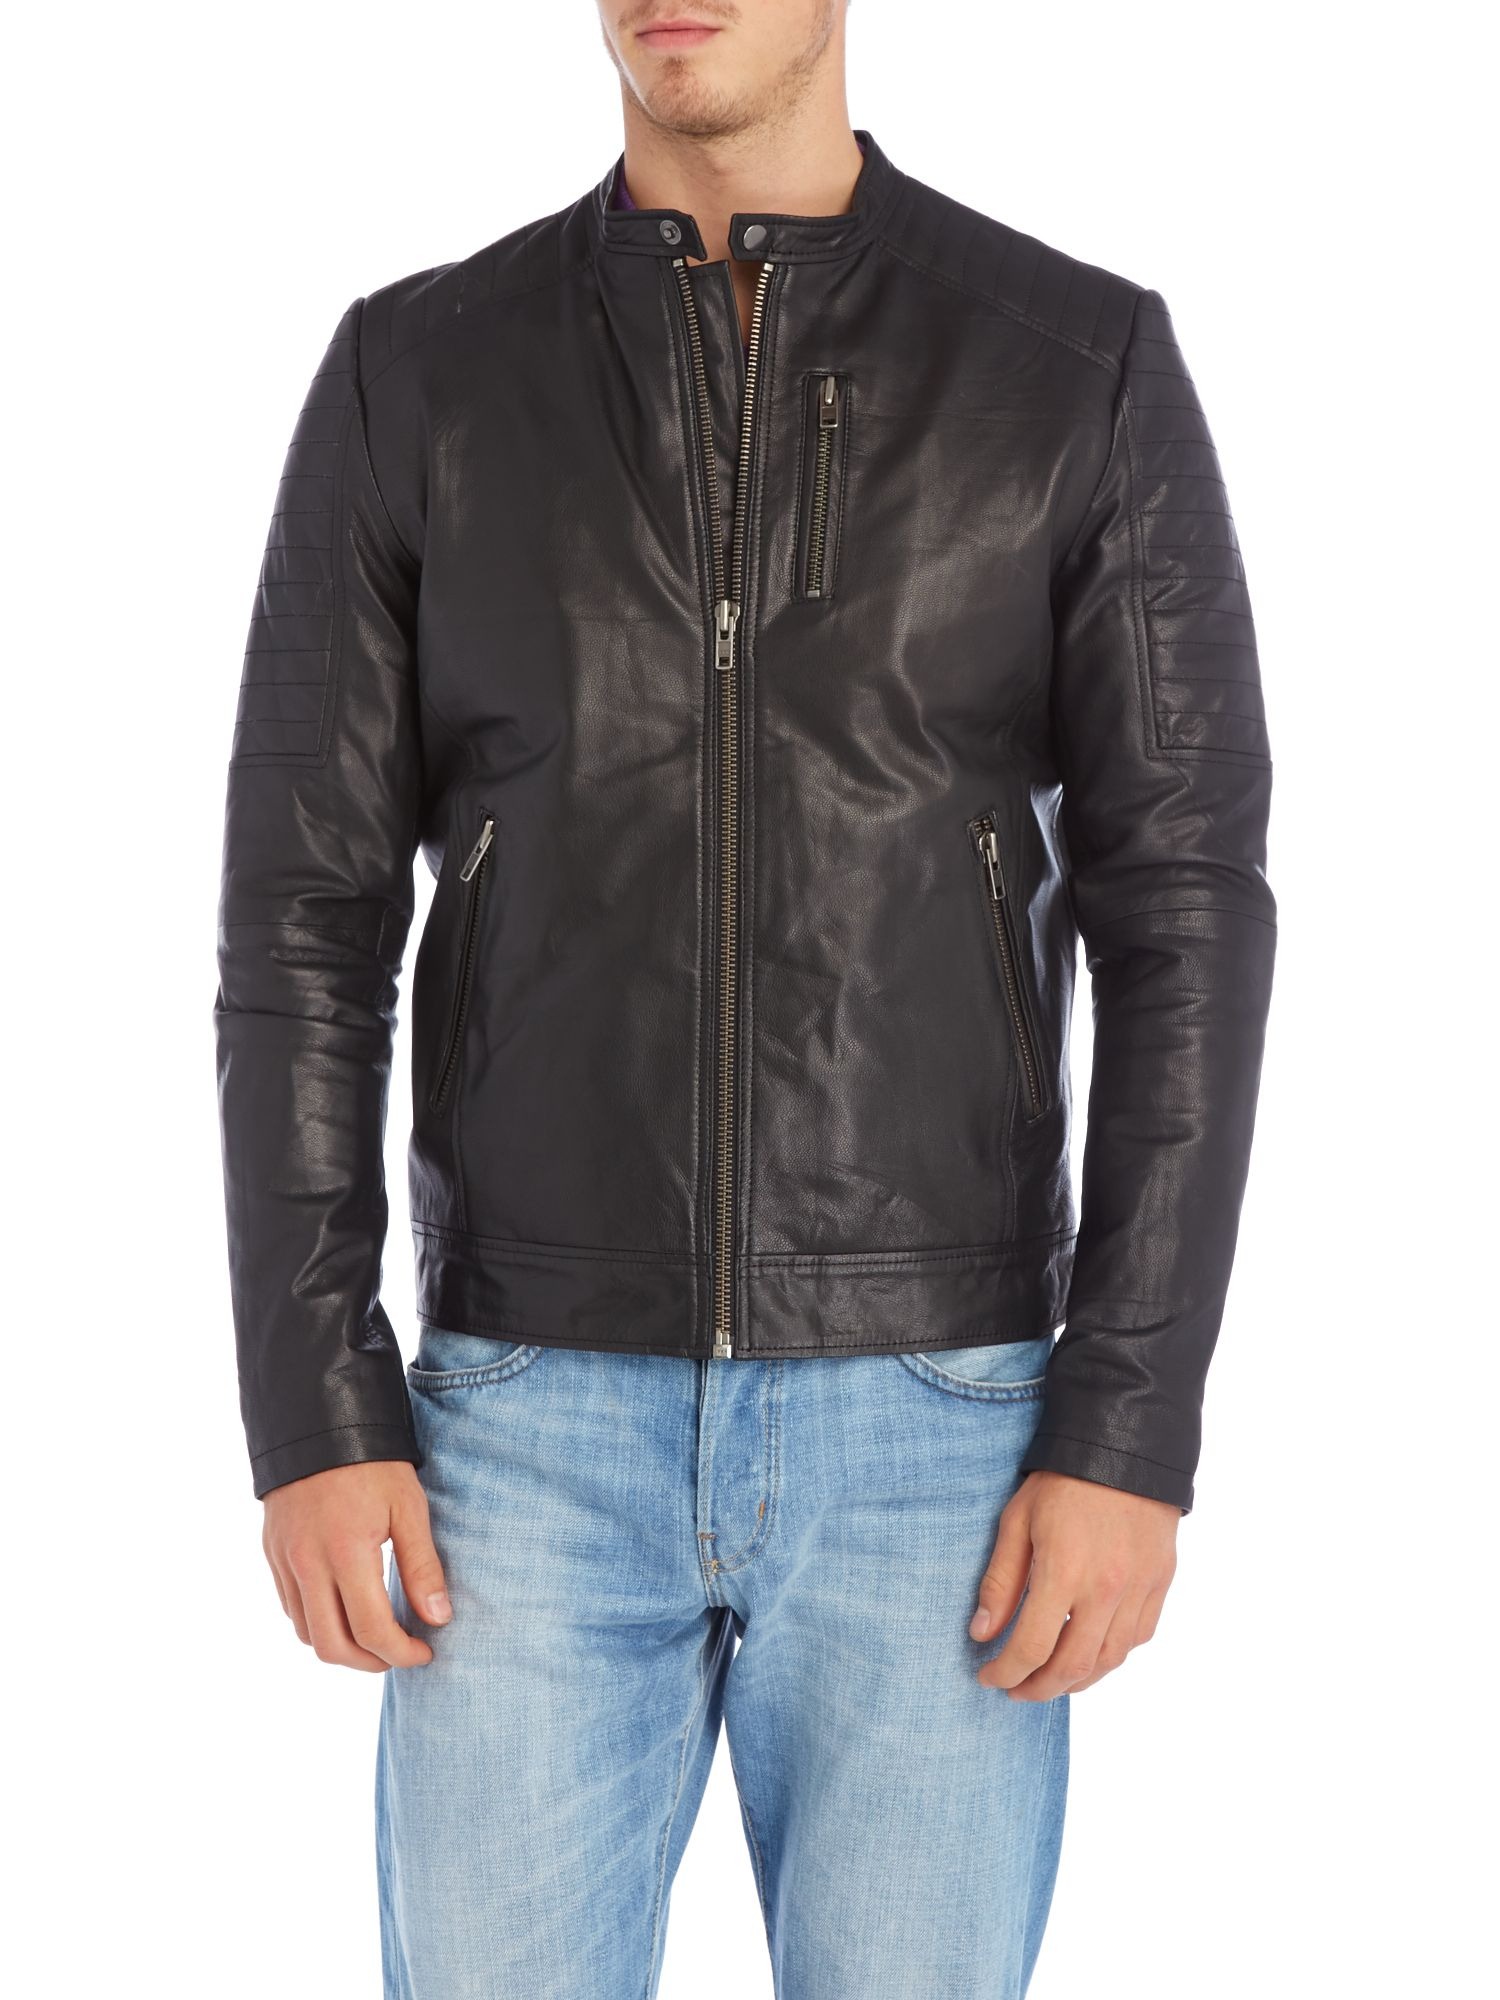 Buckle neck leather jacket